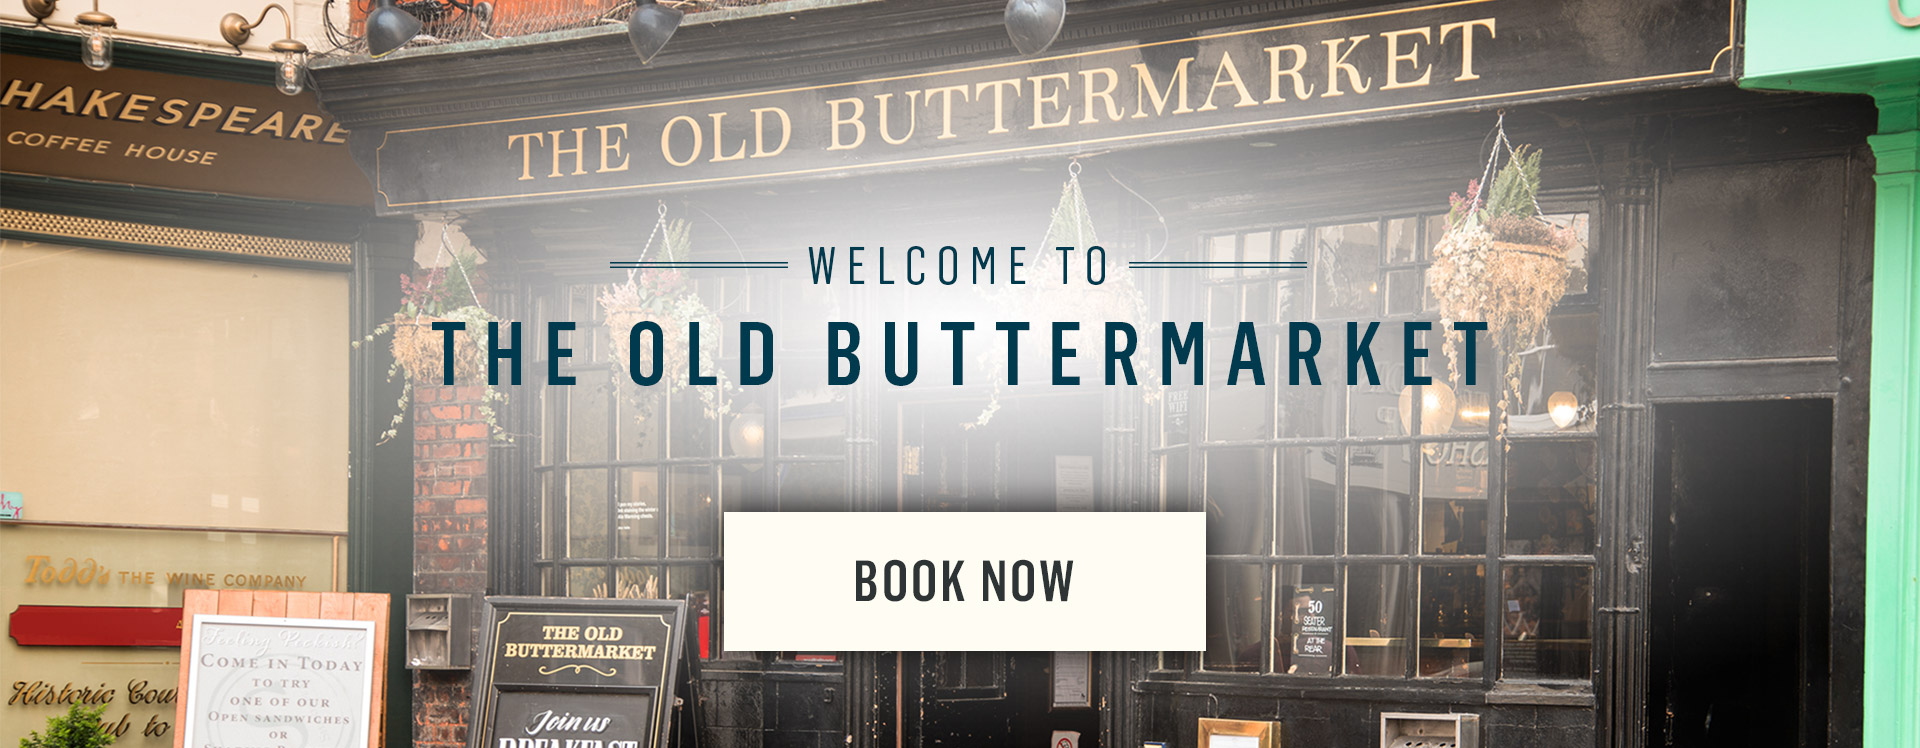 Welcome to The Old Buttermarket - Book Now